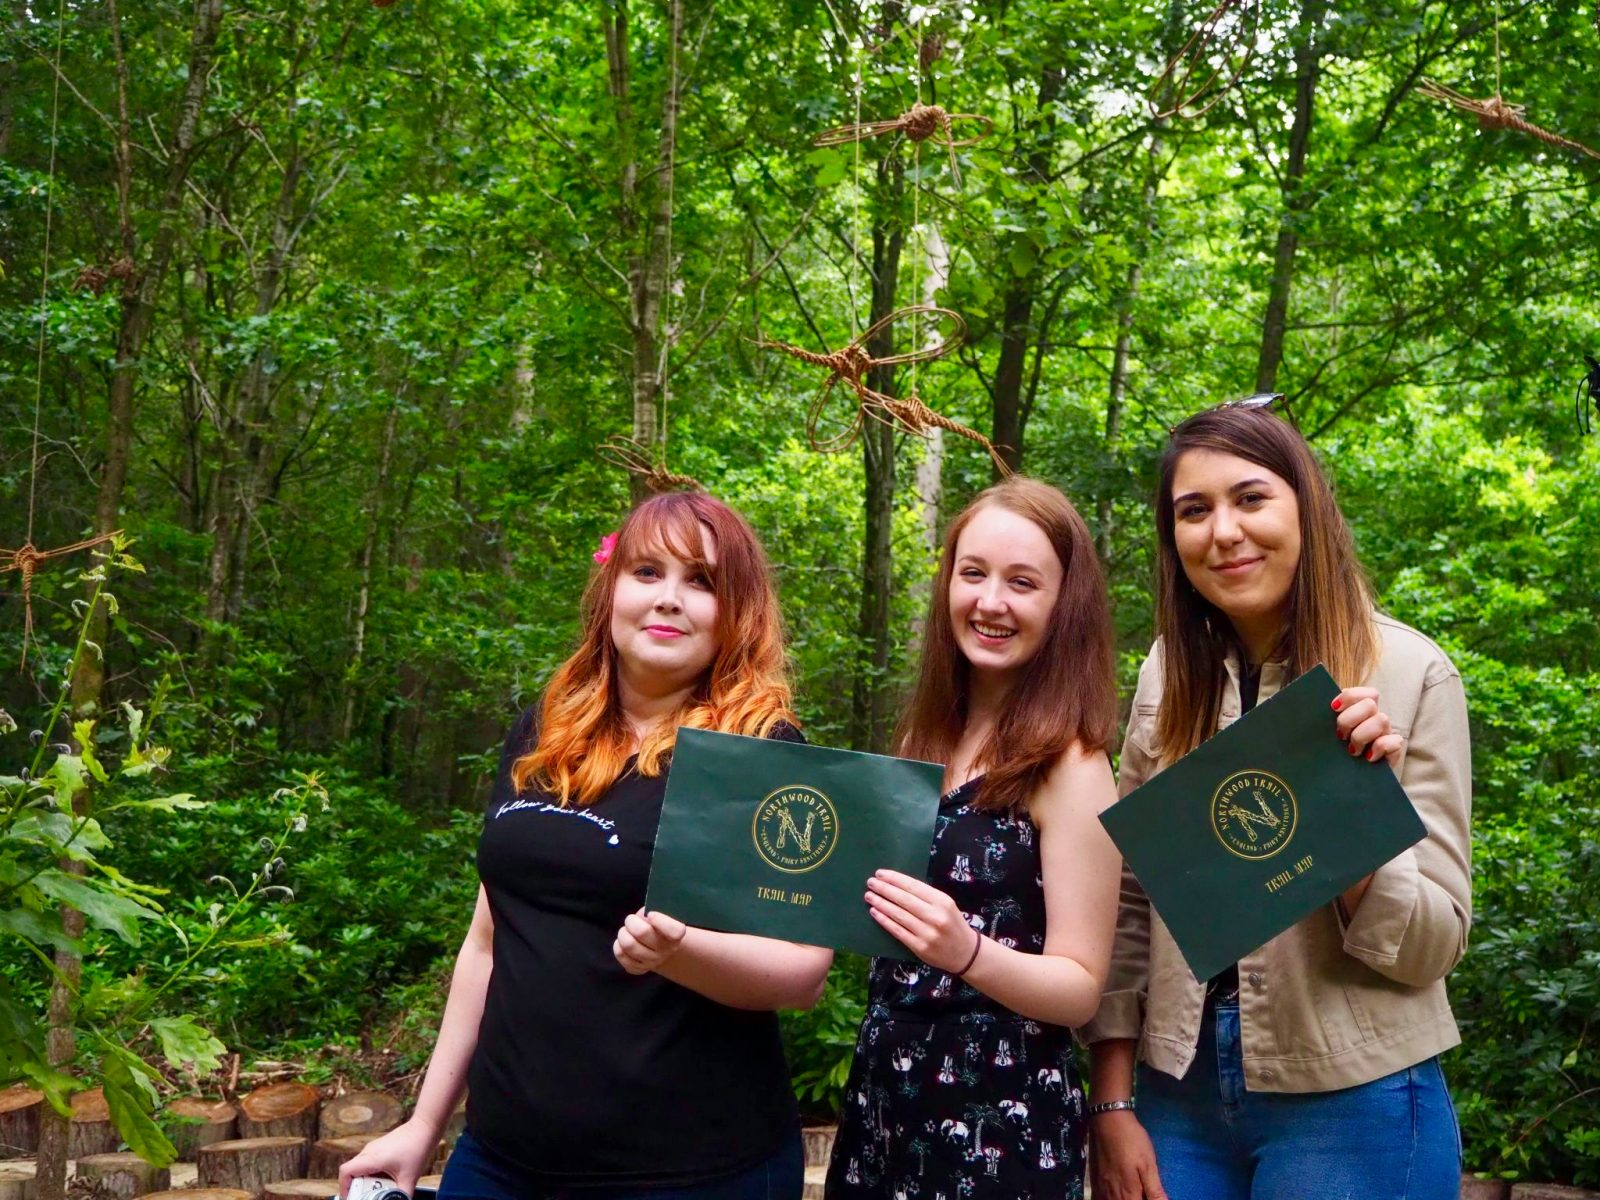 louise, pippa and natalie, standing up and holding trail maps, surrounded by green forest